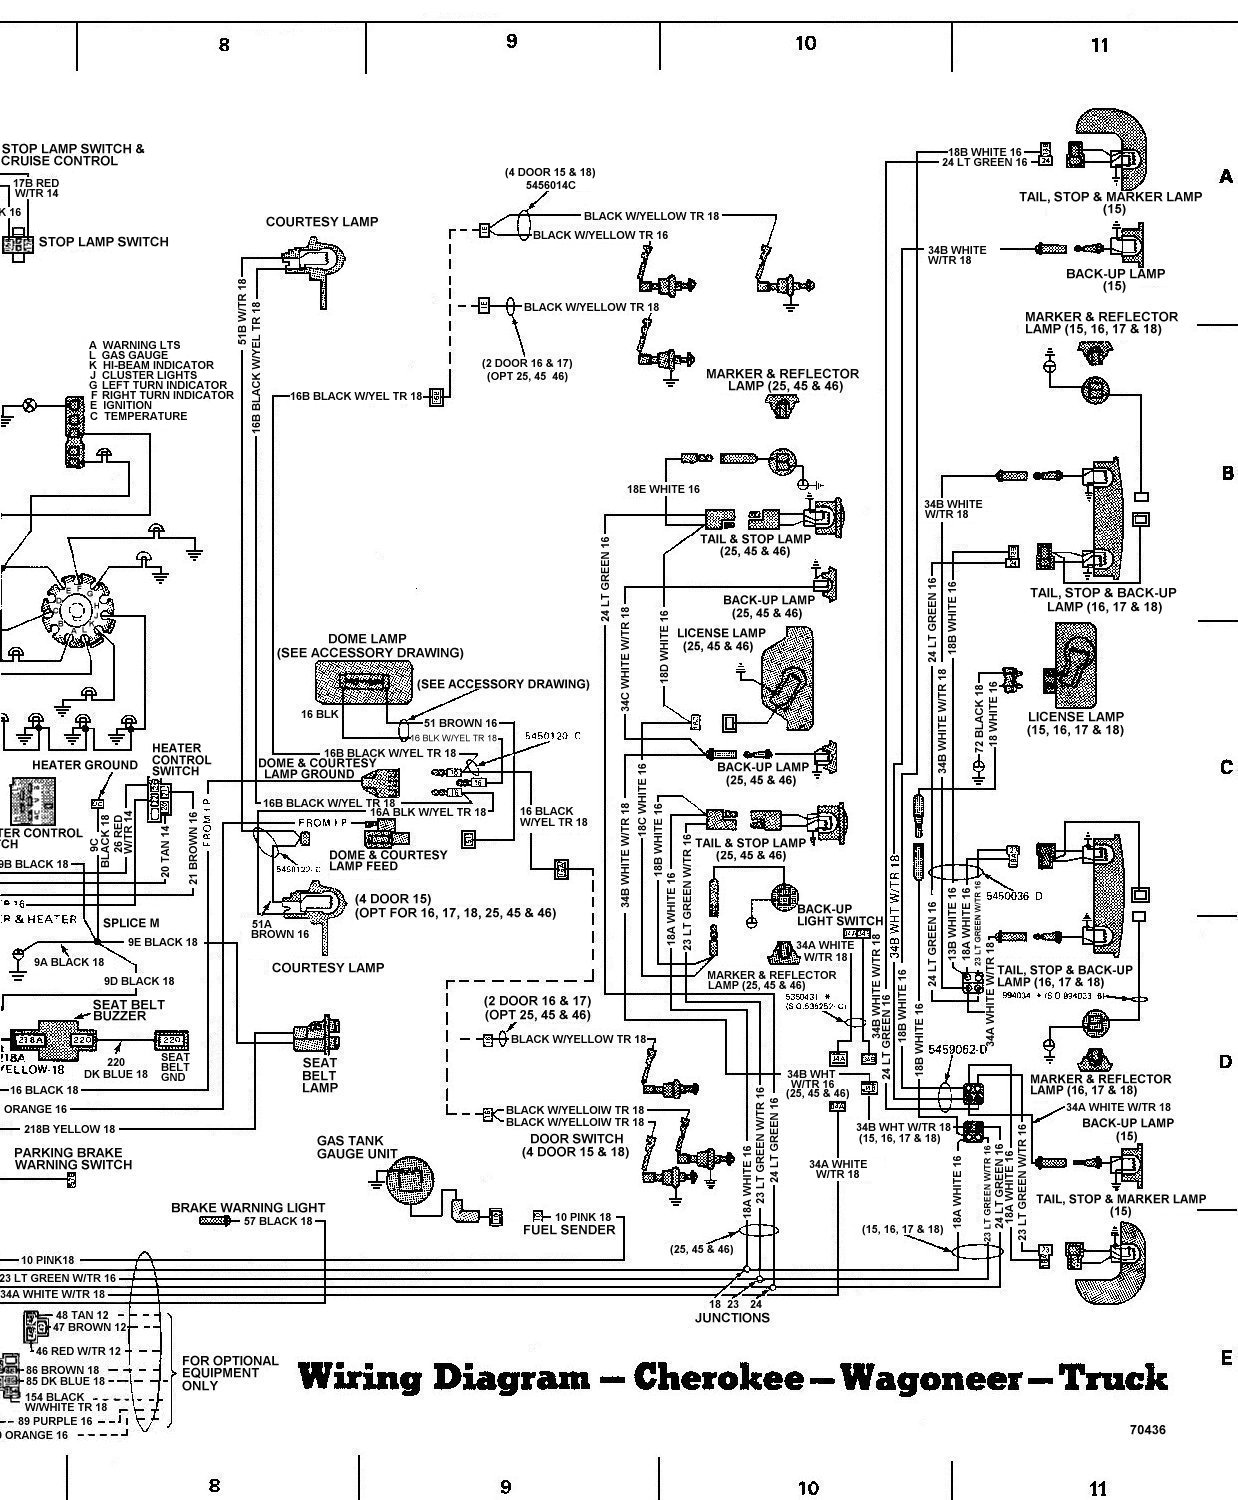 1998 Jeep Cherokee Wiring Diagram efcaviation – 96 Jeep Cherokee Wiring Diagram